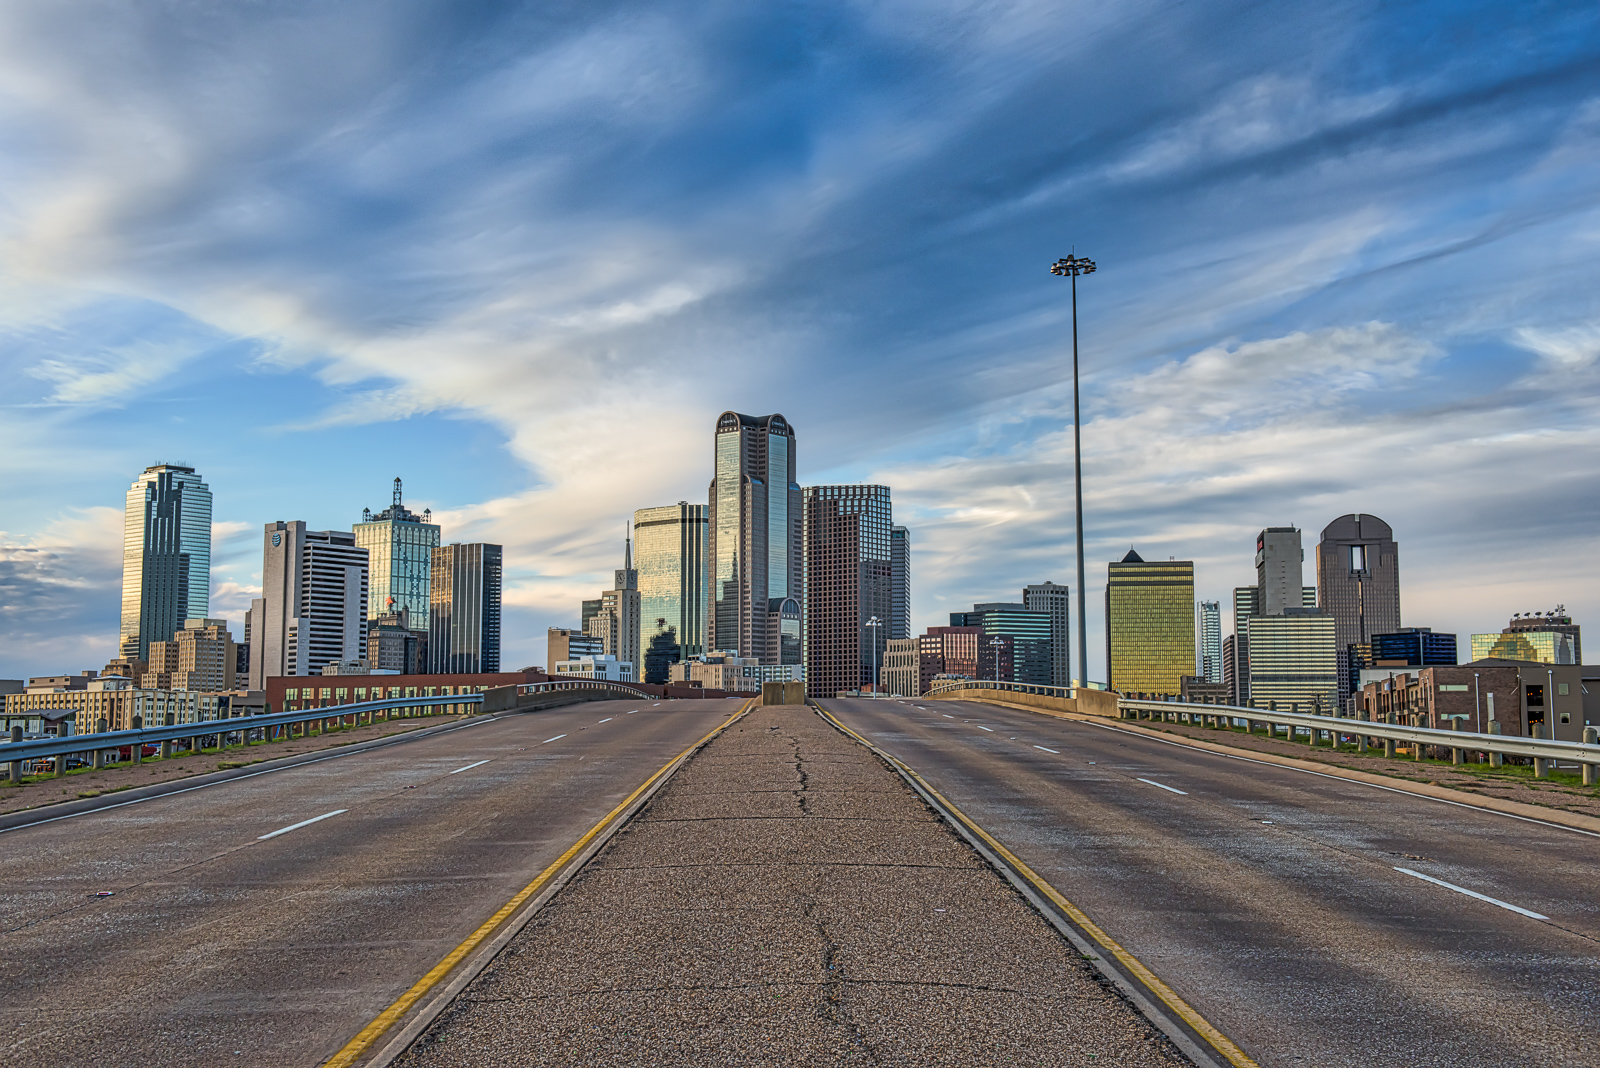 Dallas, skyline, cityscapes, architecture, buildings, downtown, urban, city, cities, USA, America, images of dallas, photos of dallas, pictures of dallas, photo